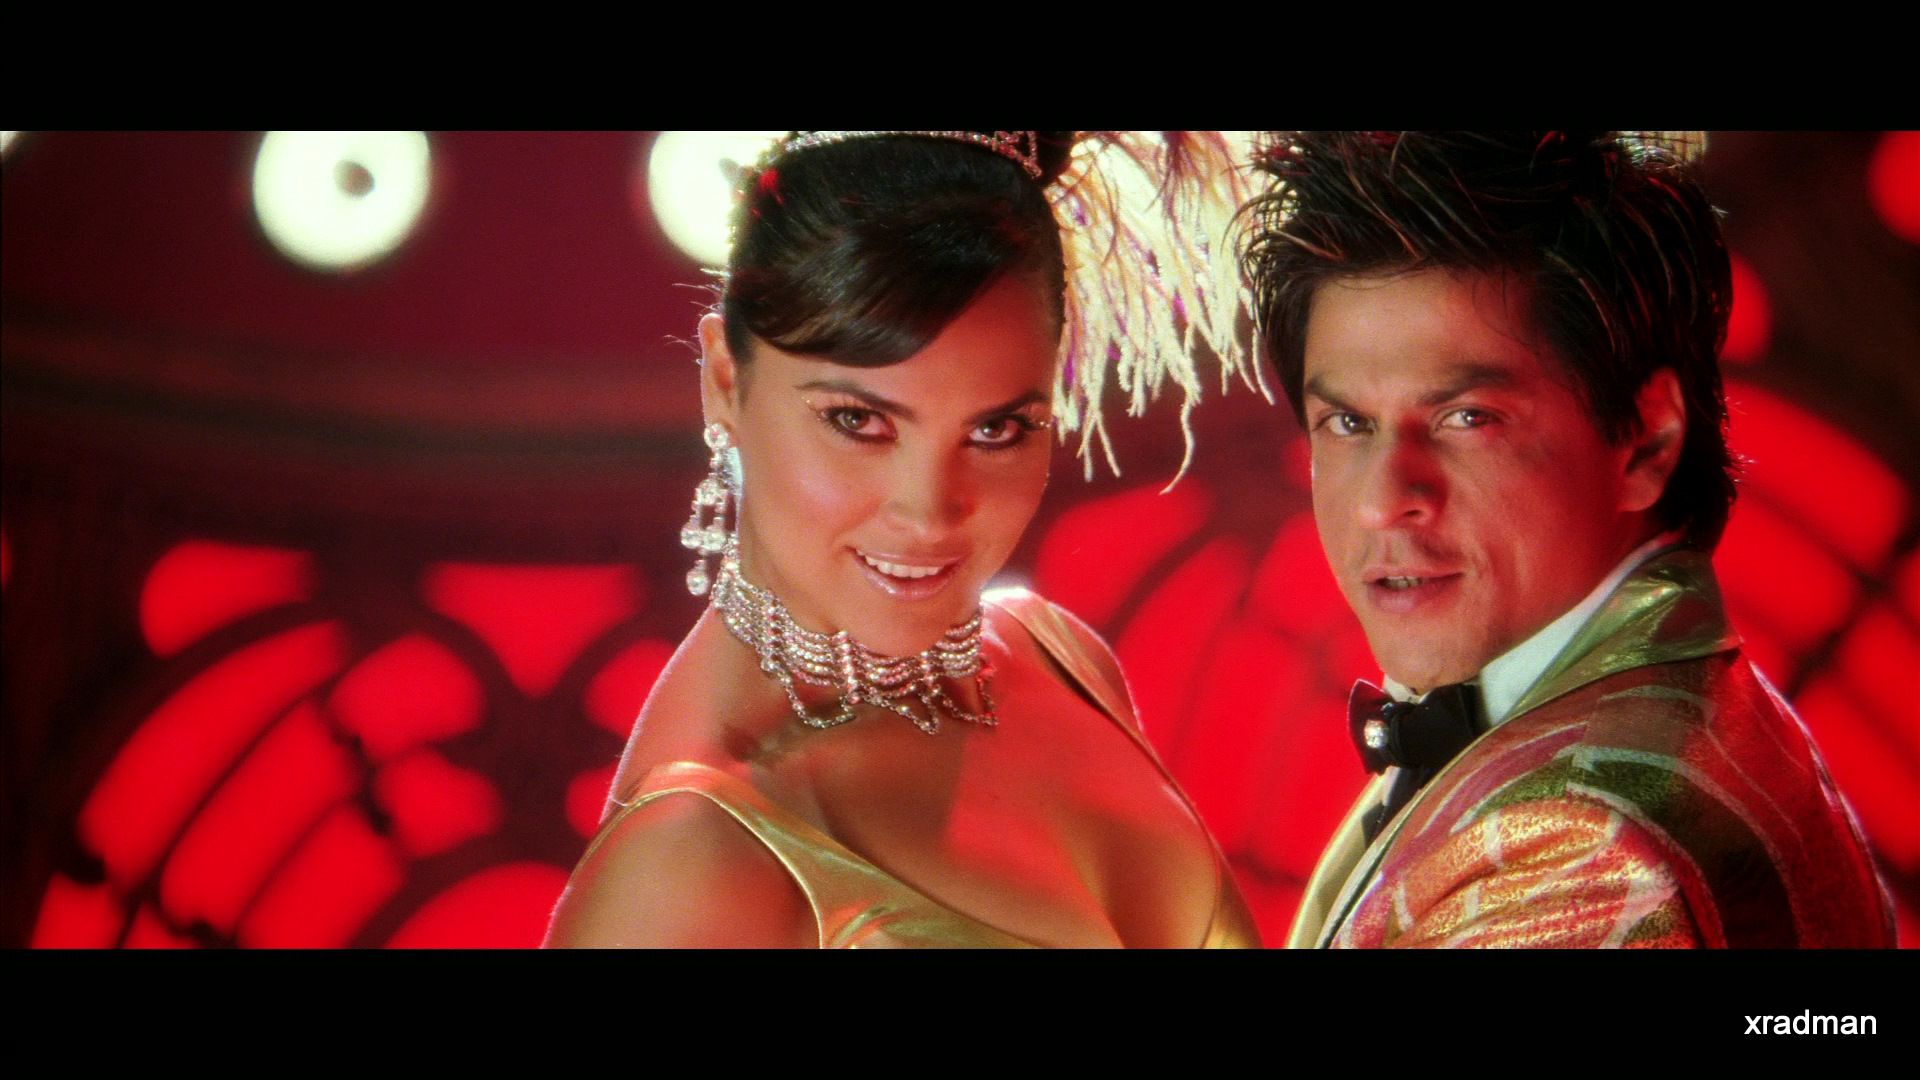 rab ne bana di jodi (2008) - blu-ray screenshots - blu-ray forum